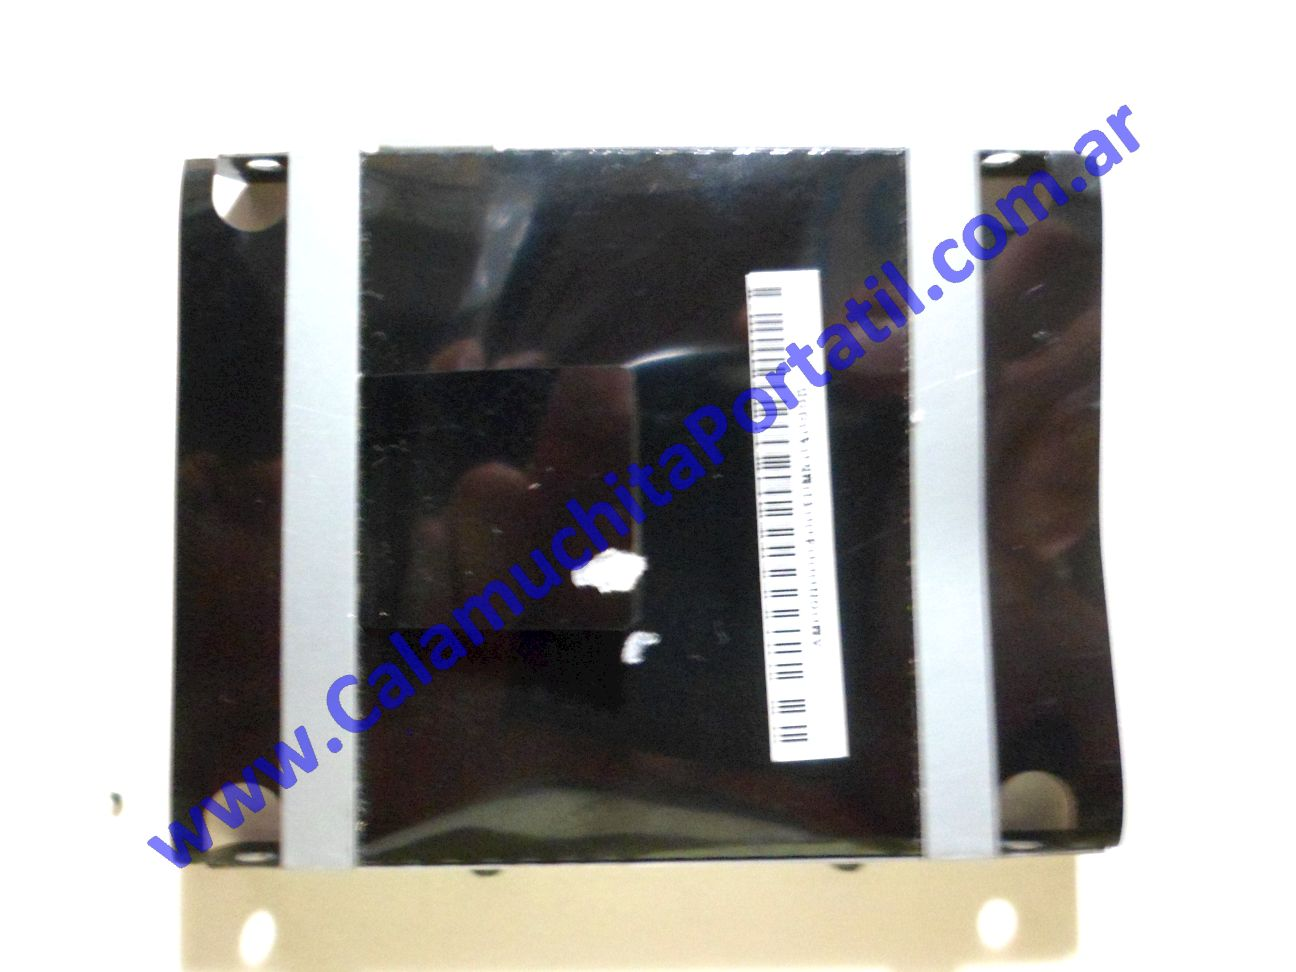 0004GCA Carry Disk Lenovo S10-2